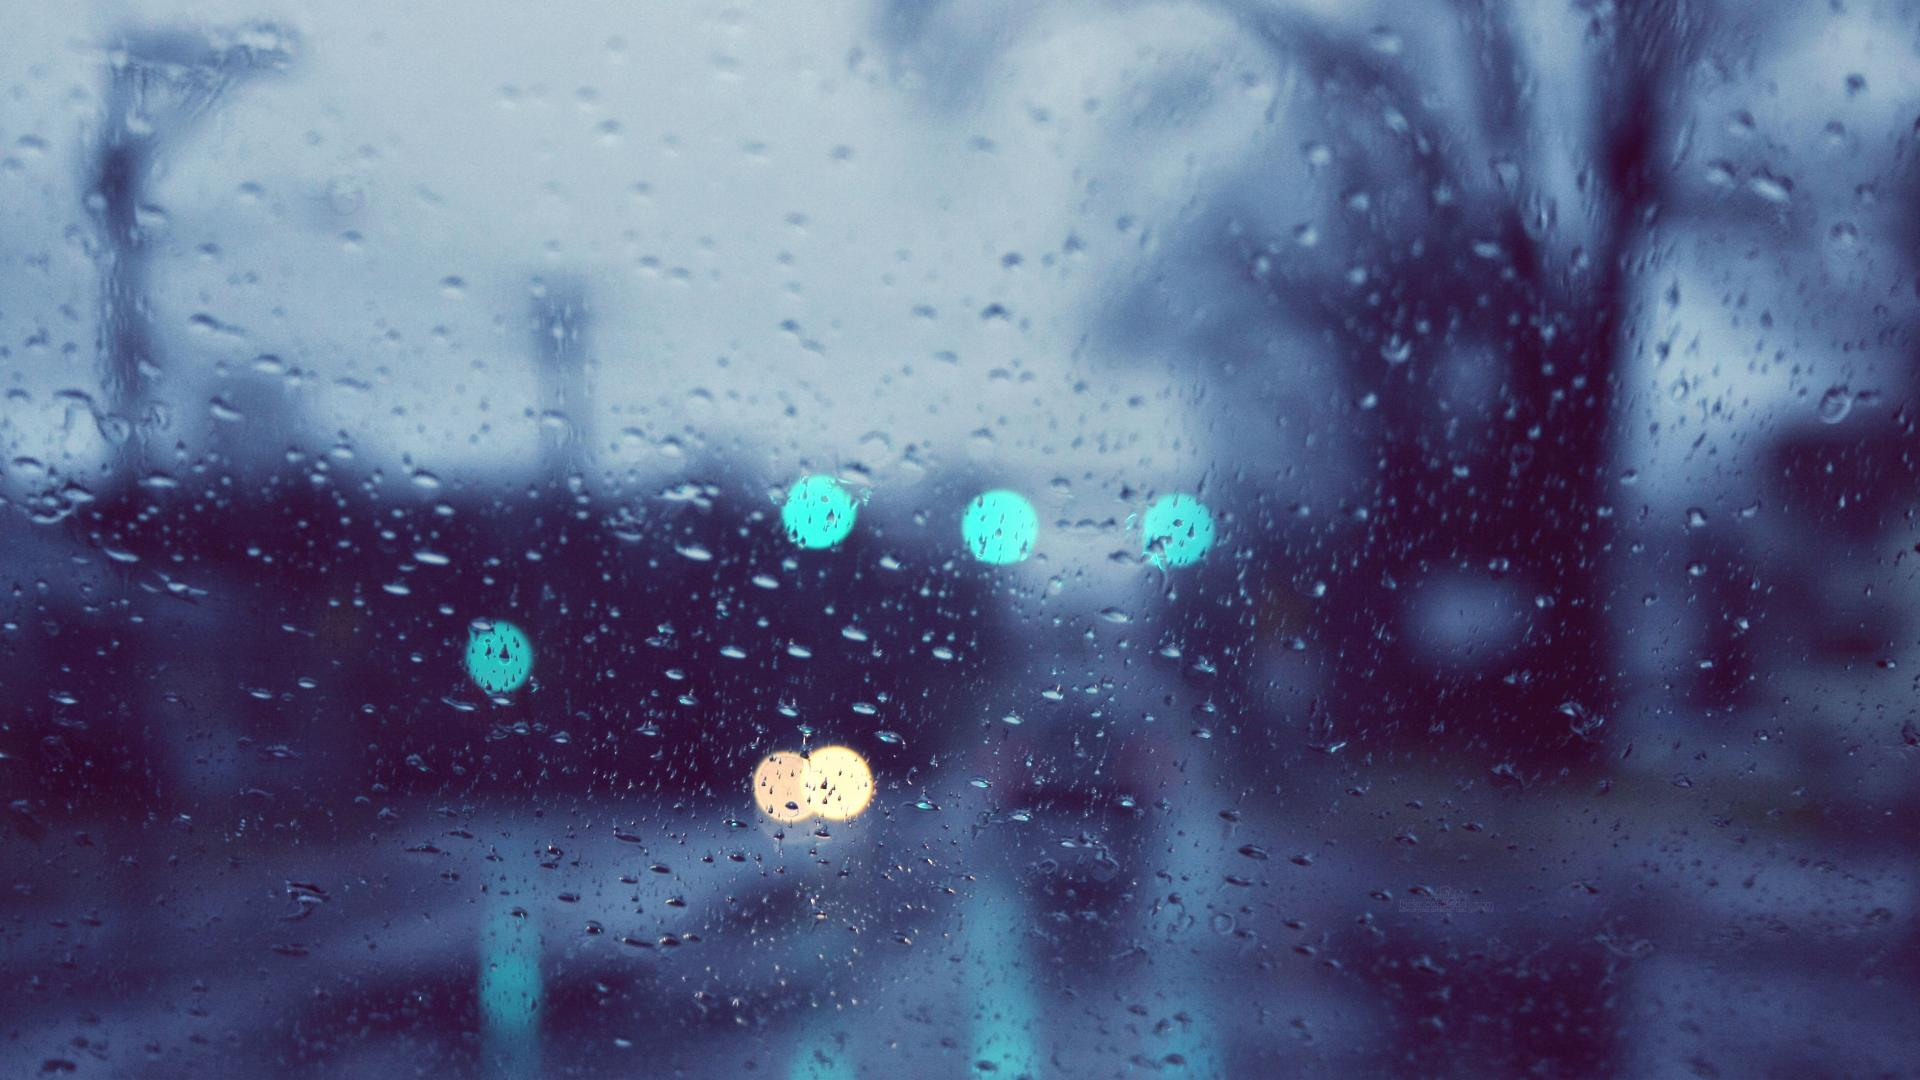 Rain Wallpaper 205 Bokeh Backgrounds